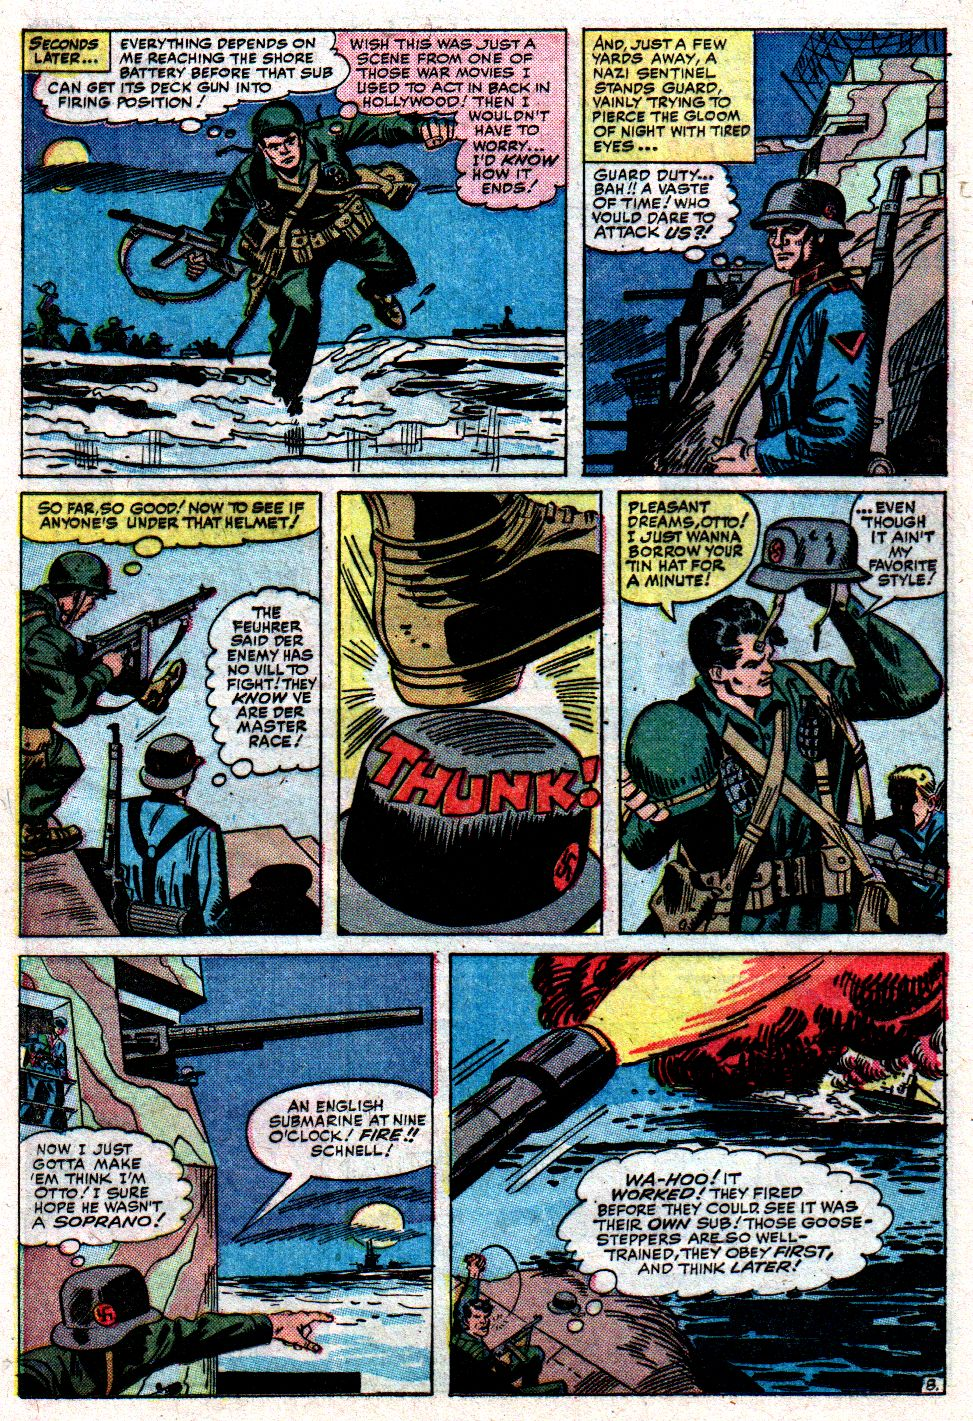 Read online Sgt. Fury comic -  Issue #8 - 12